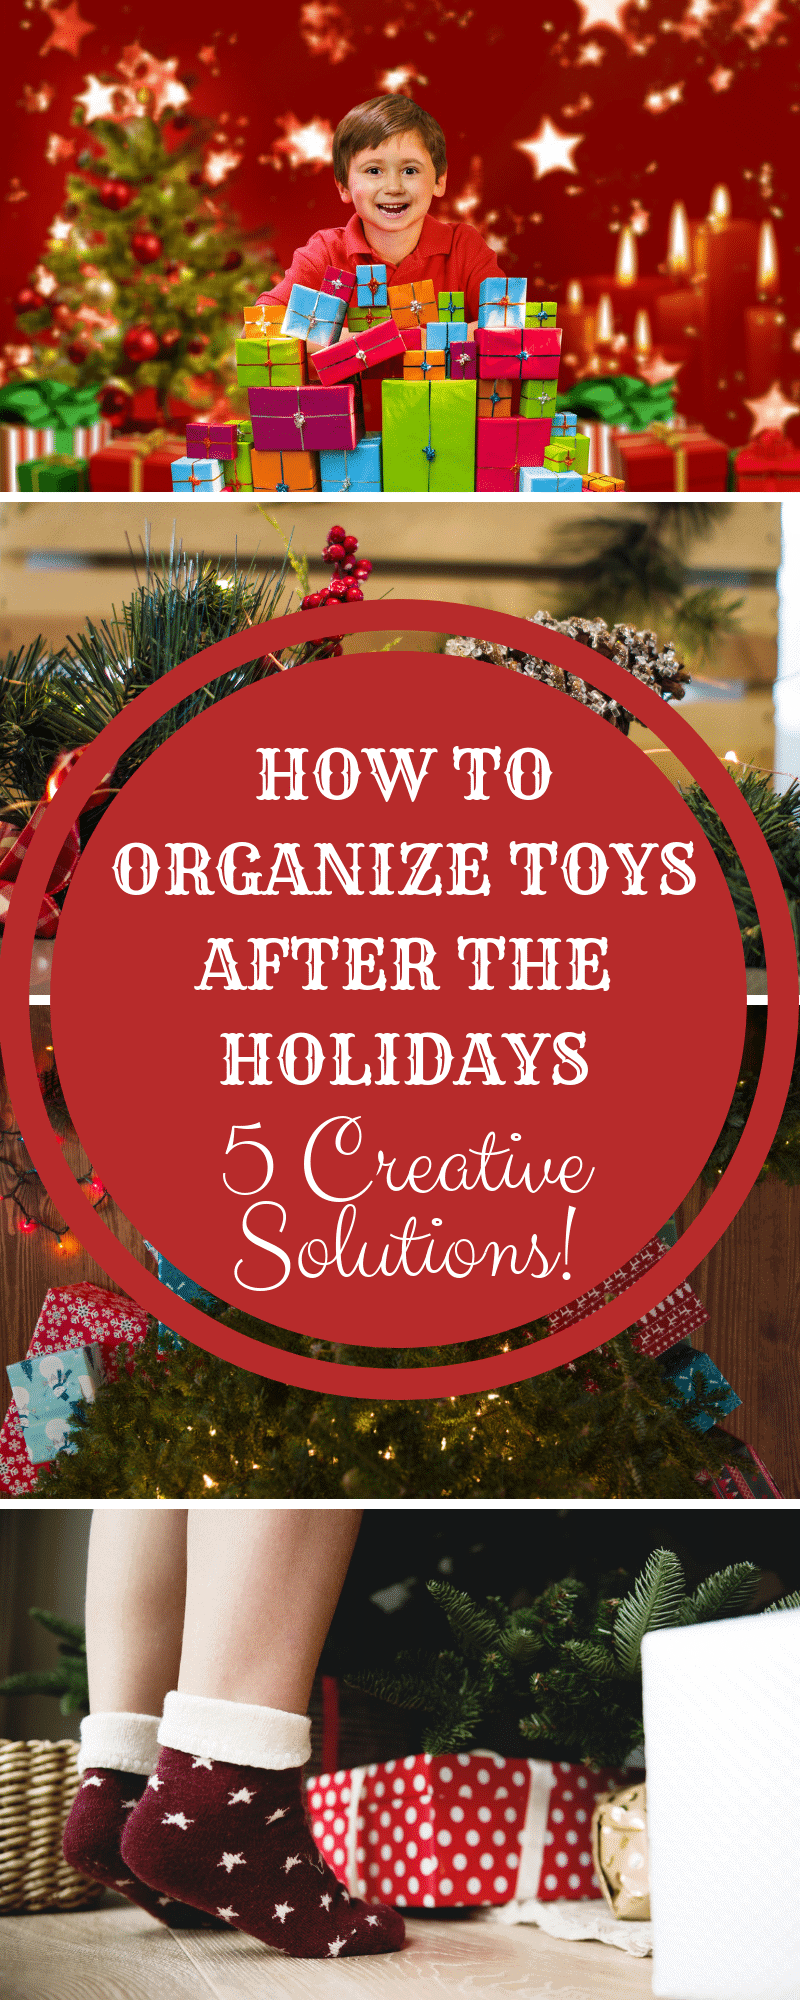 How to Organize Toys After the Holidays